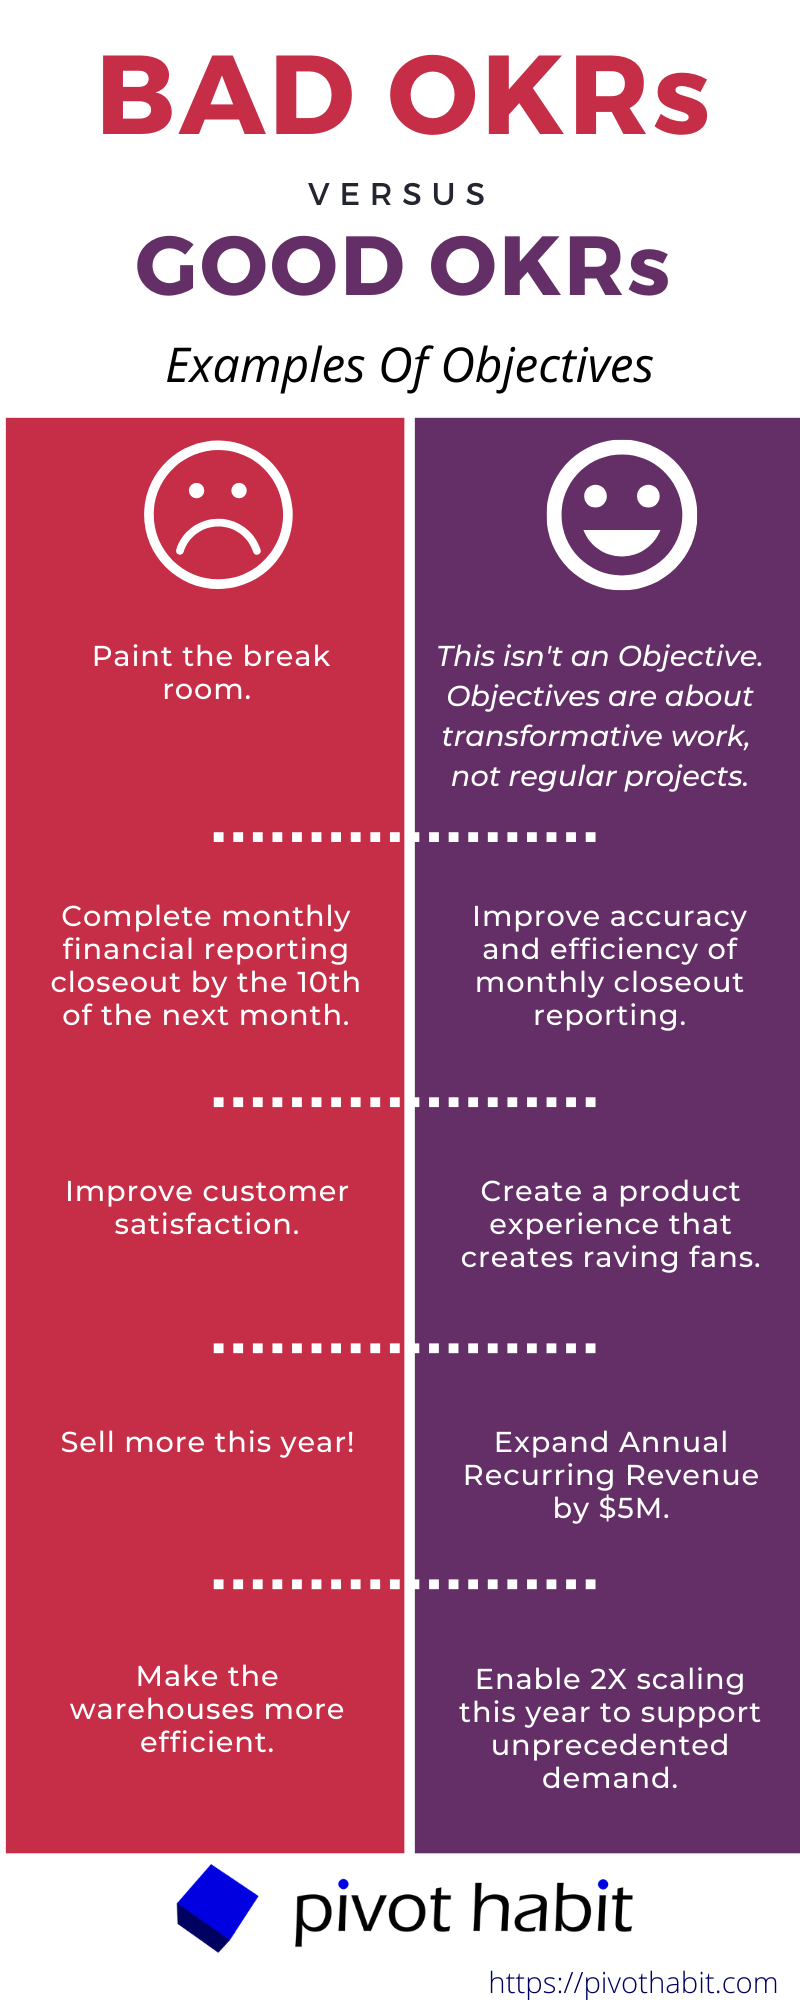 Examples of bad vs. good Objectives in OKRs.